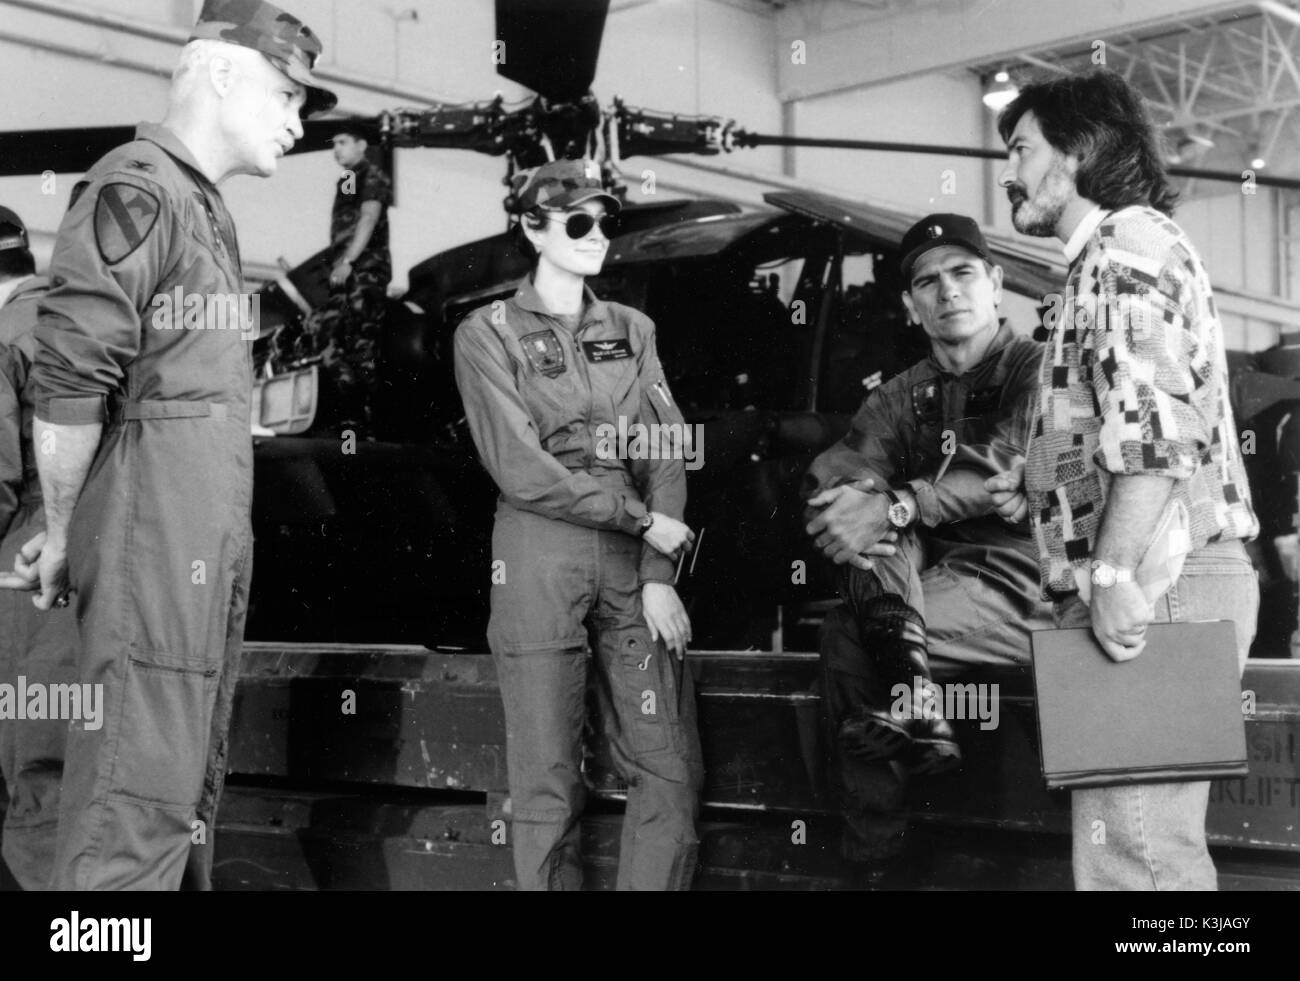 WINGS OF THE APACHE aka FIRE BIRDS Co-Producer DALE DYE, SEAN YOUNG, TOMMY LEE JONES, Director DAVID GREEN WINGS OF THE APACHE - Stock Image